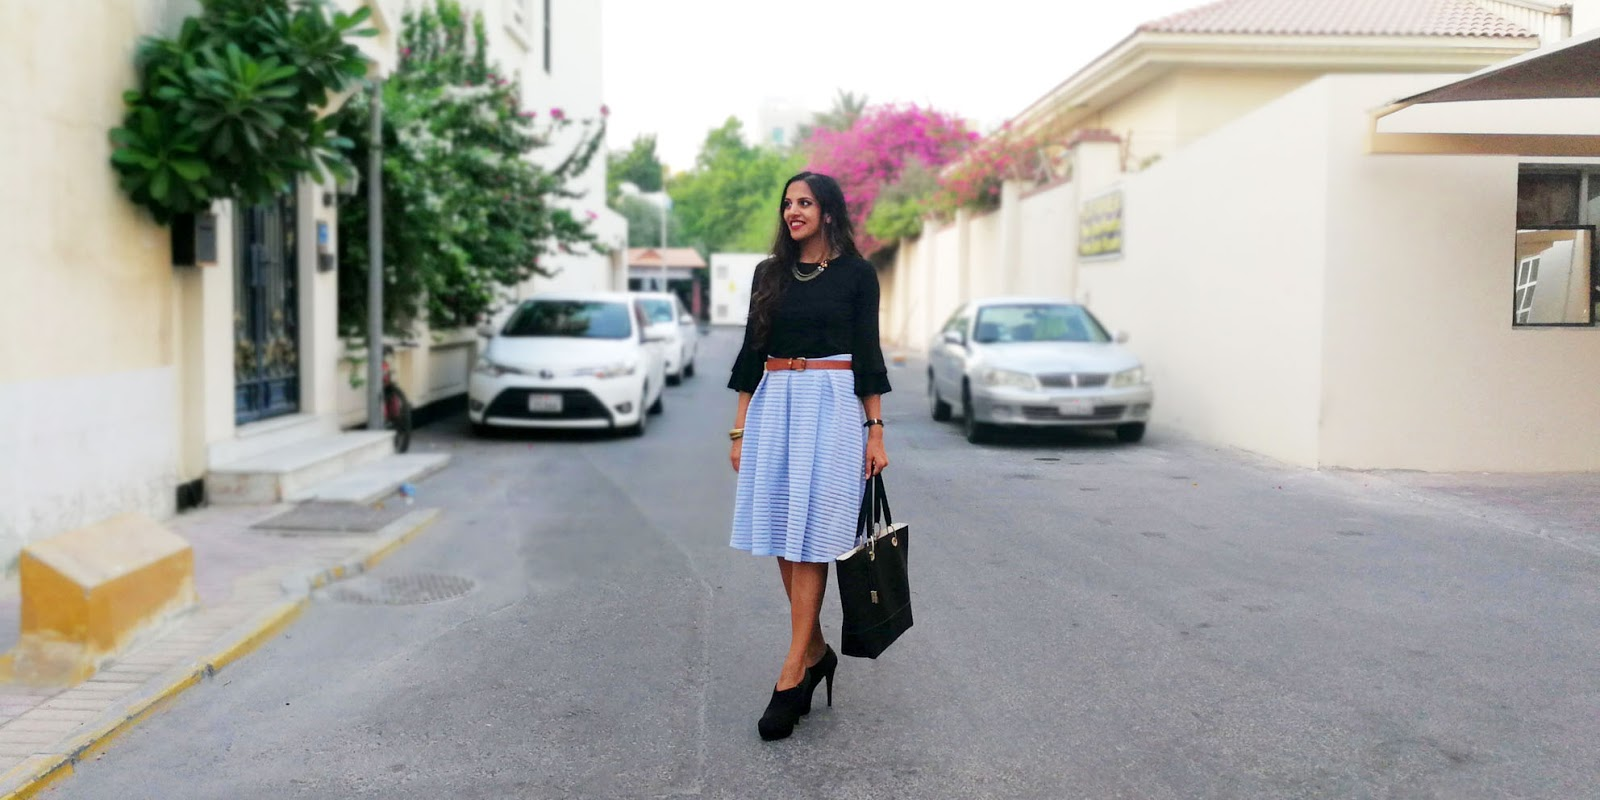 Black Double Ruffles, Self-Striped Skirt + My Paradox of Relaxing